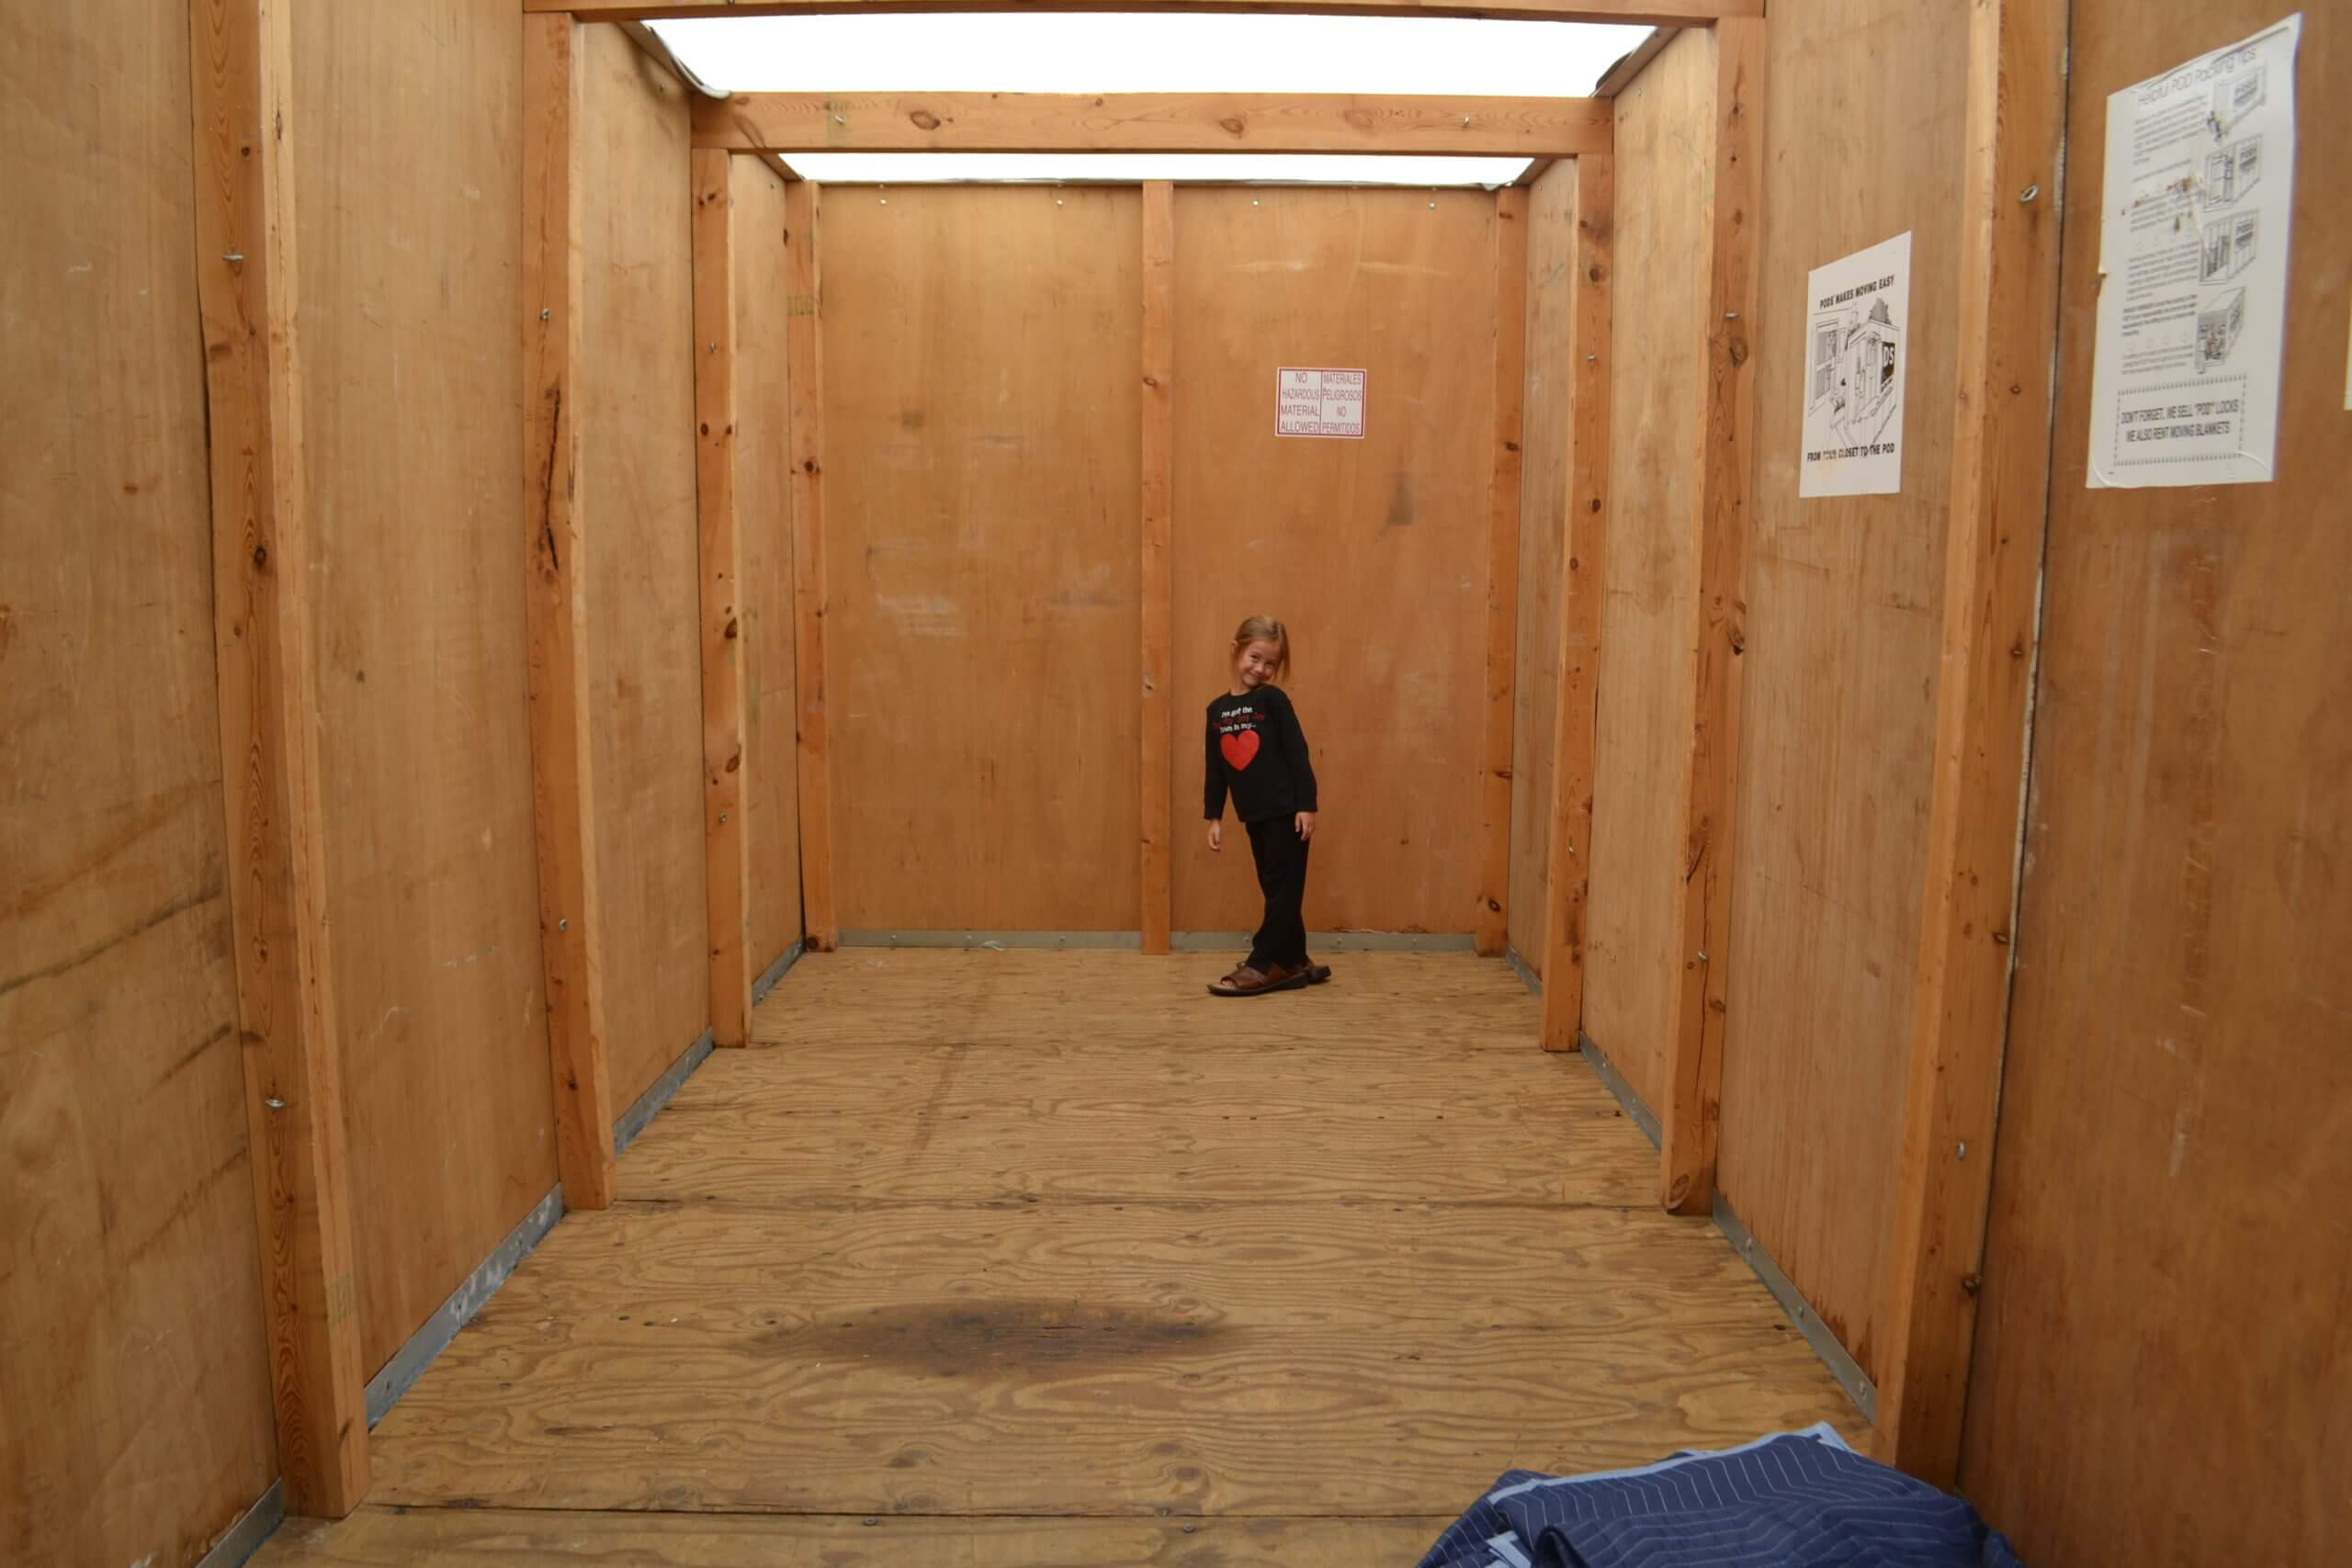 5 things not to put in storage podspods